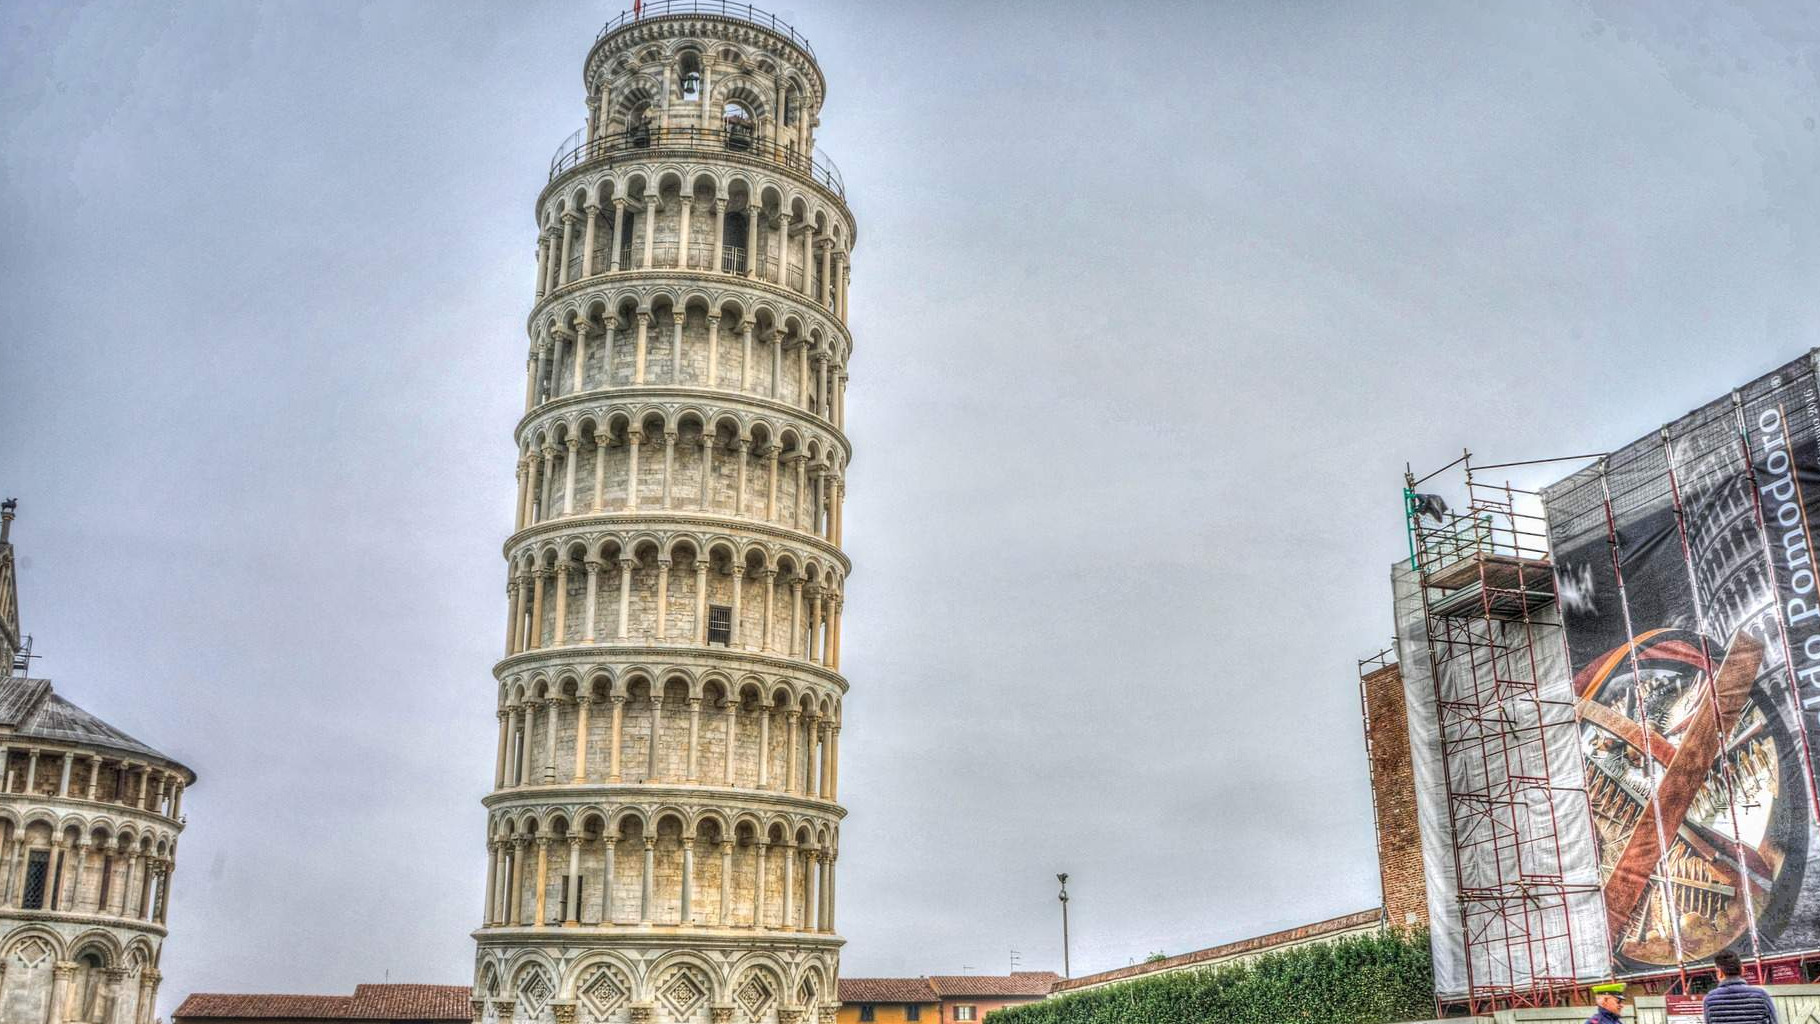 The Leaning Tower of Pisa is Now Leaning Little Less